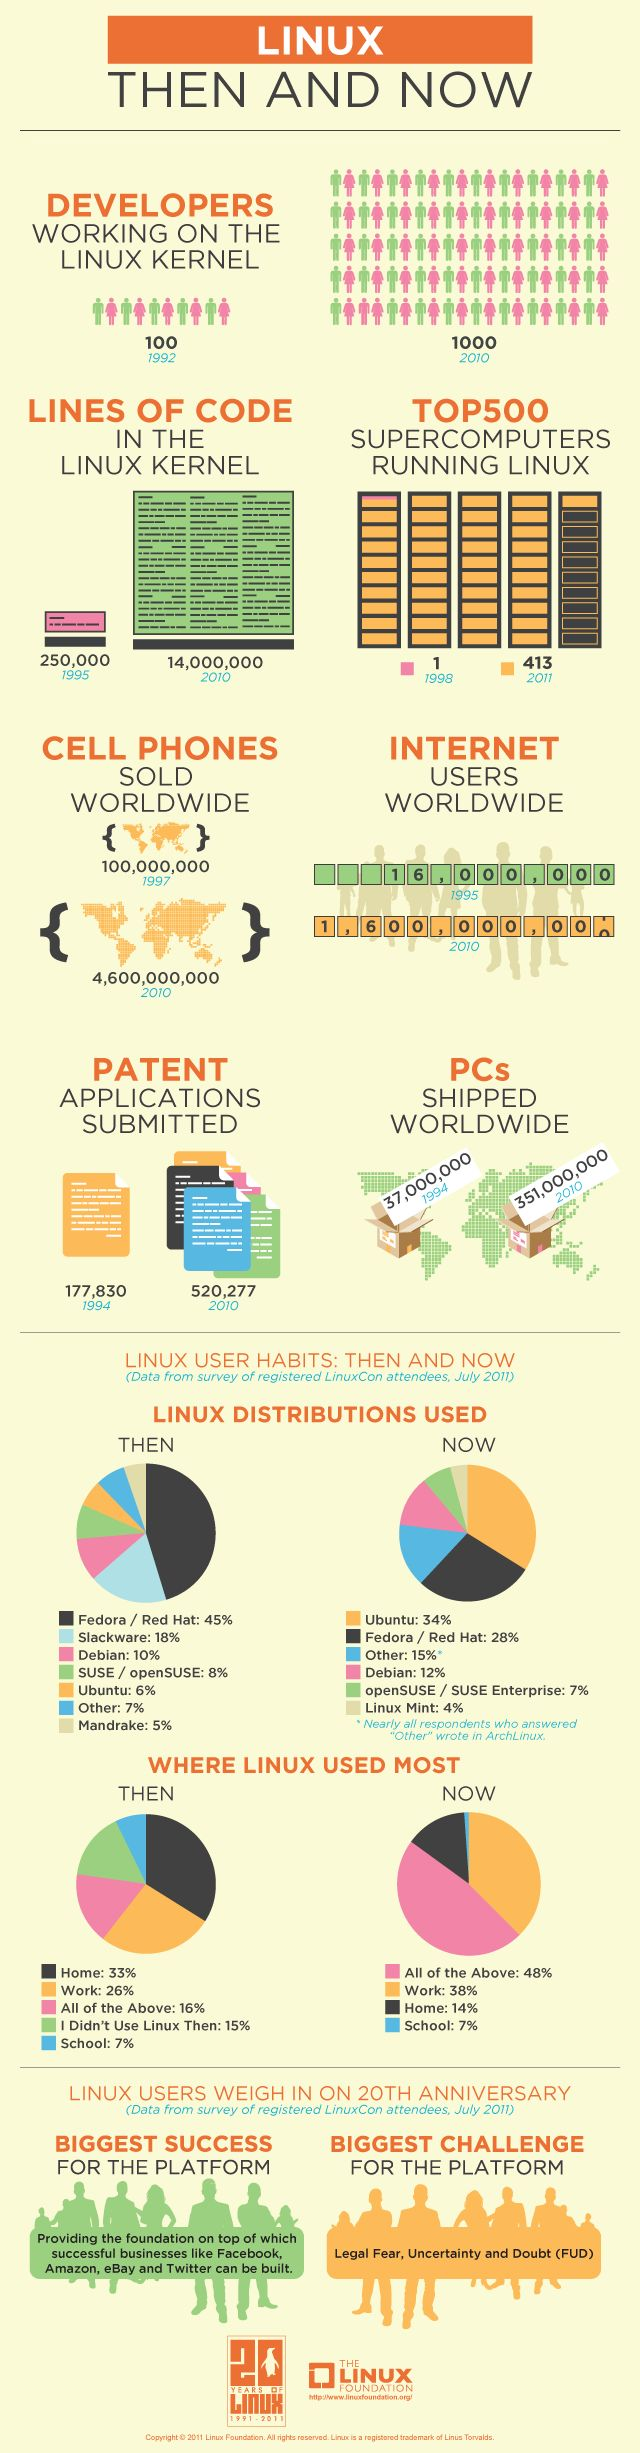 Linux: Then & Now. Our infographic helping to celebrate 20 years of Linux. Created August 2011.